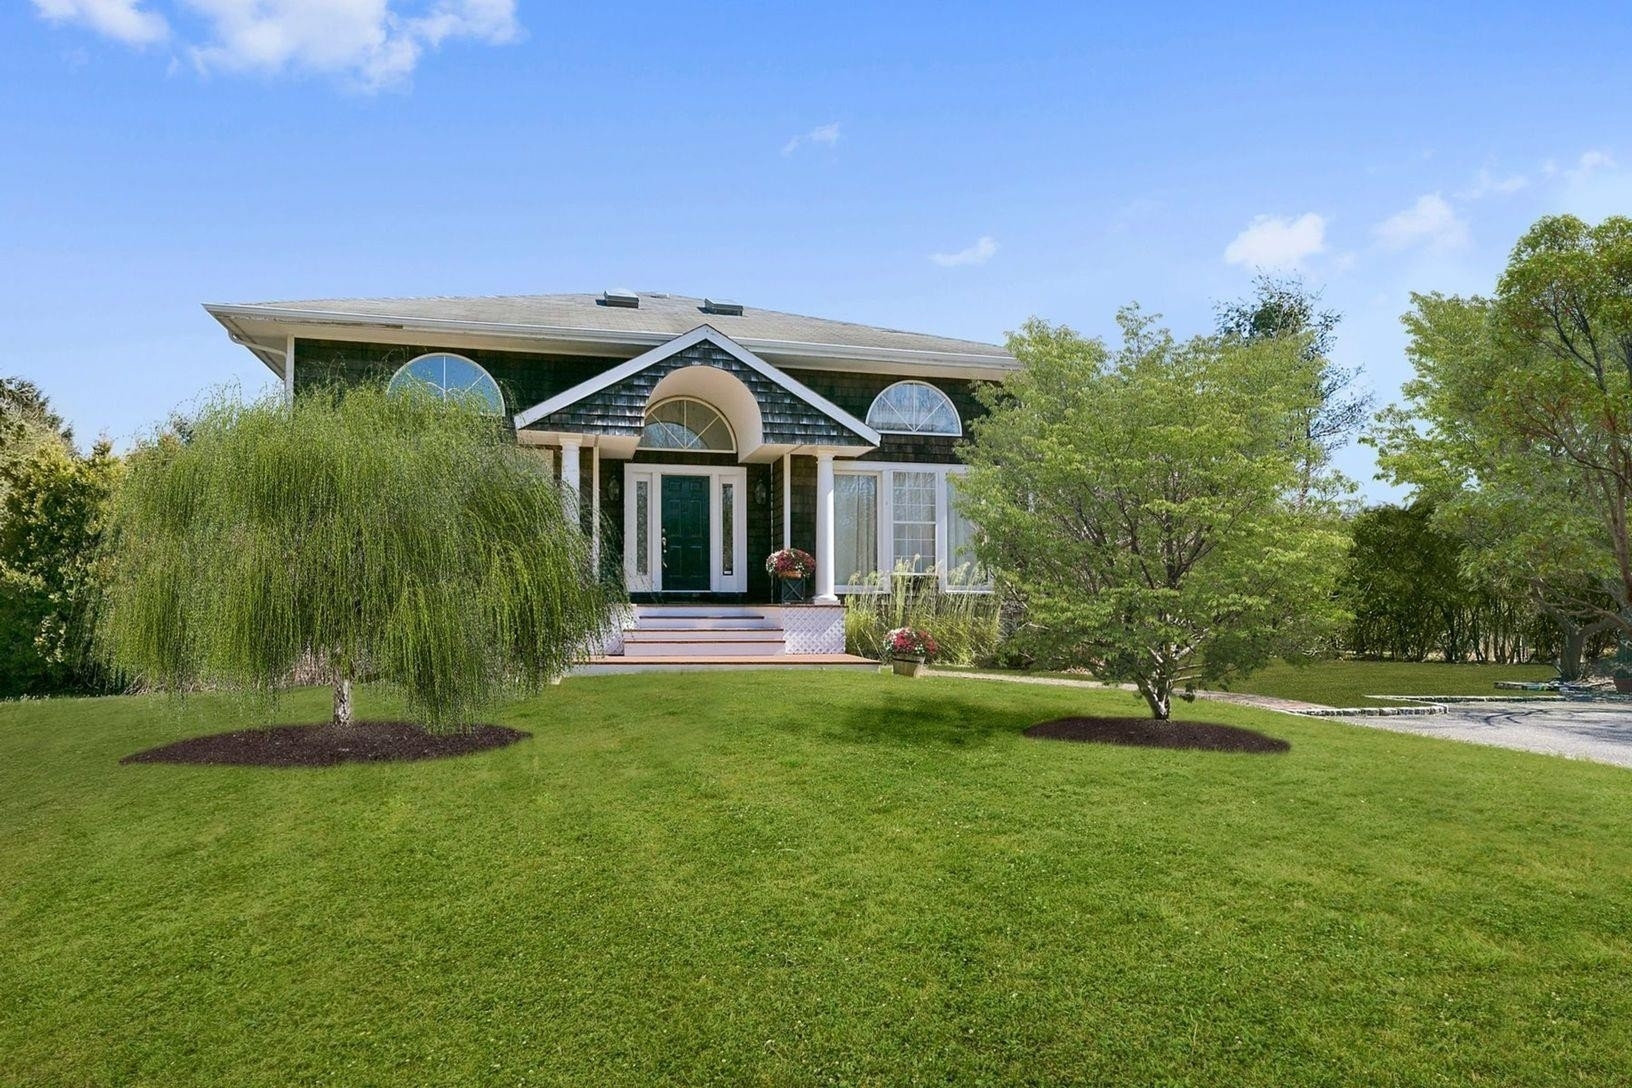 Single Family Home for Sale at Tuckahoe, Southampton, NY 11968